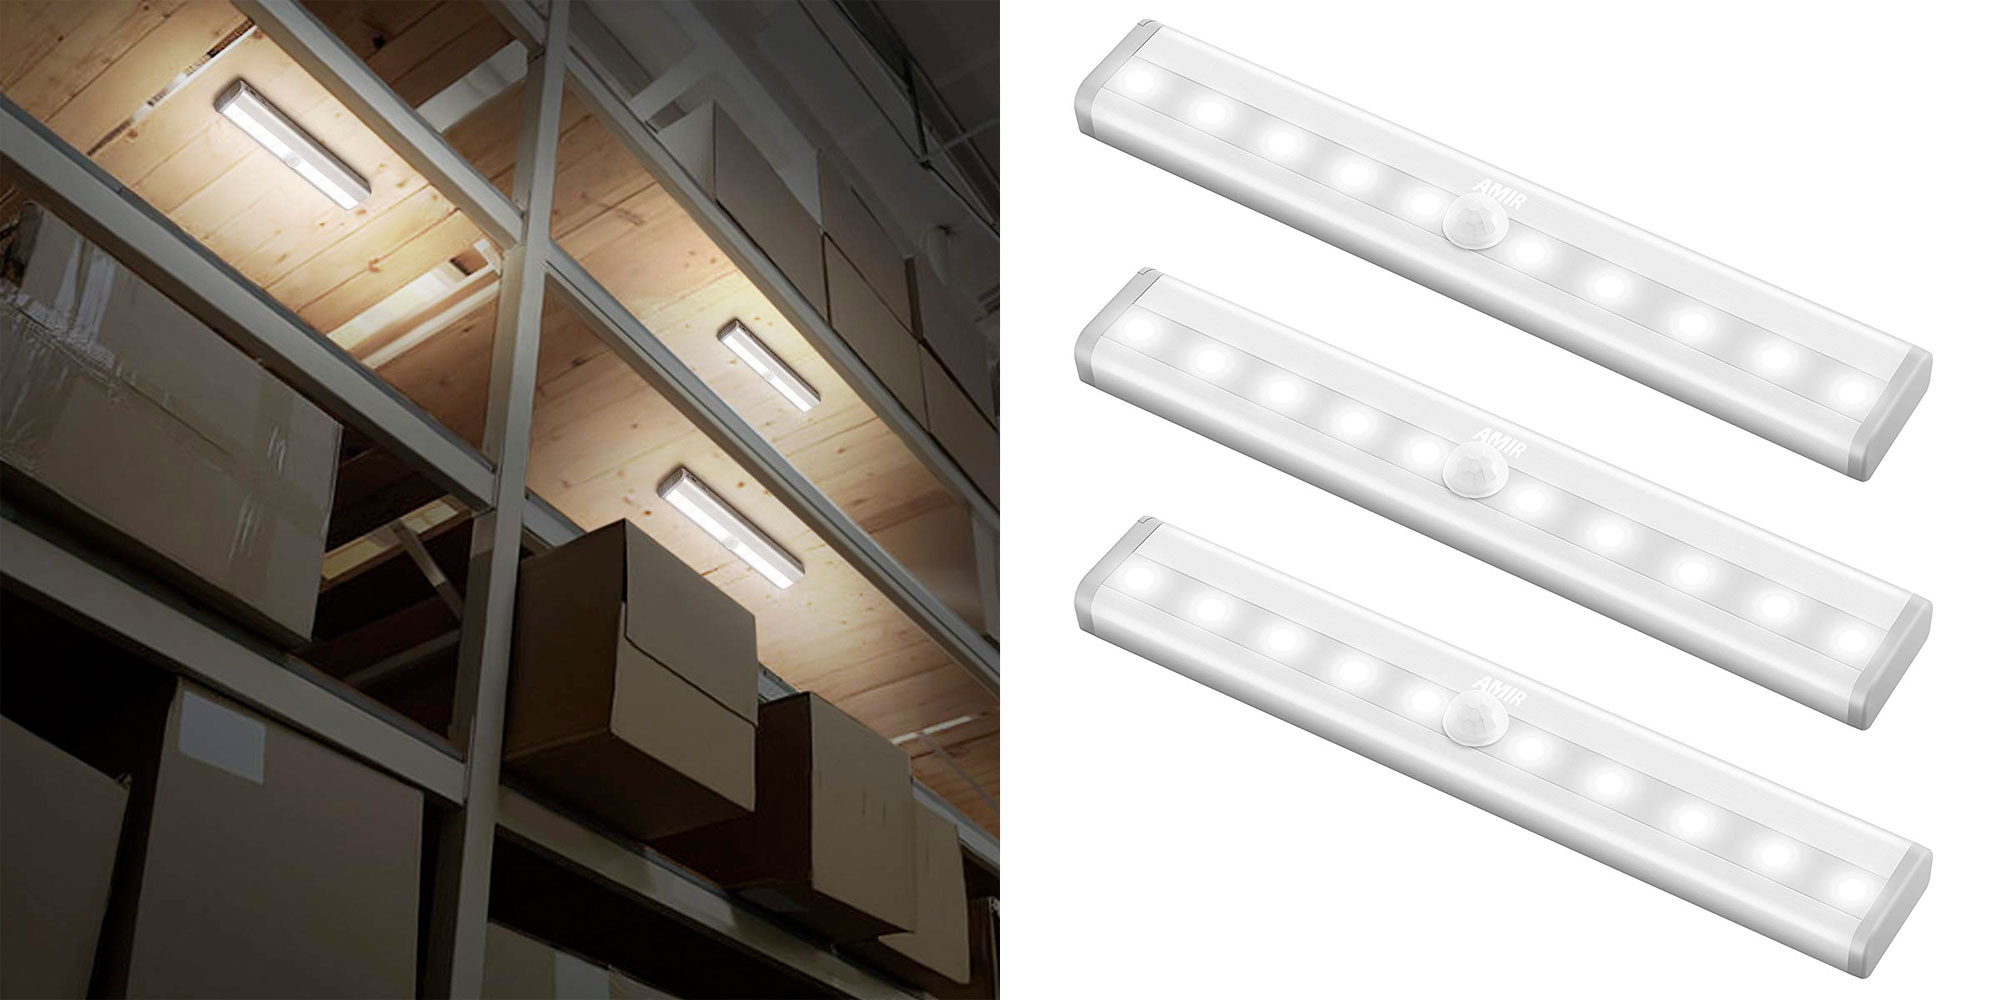 Illuminate under cabinets, closets, more w/ a 3-pack of motion-sensing LED lights for just $10